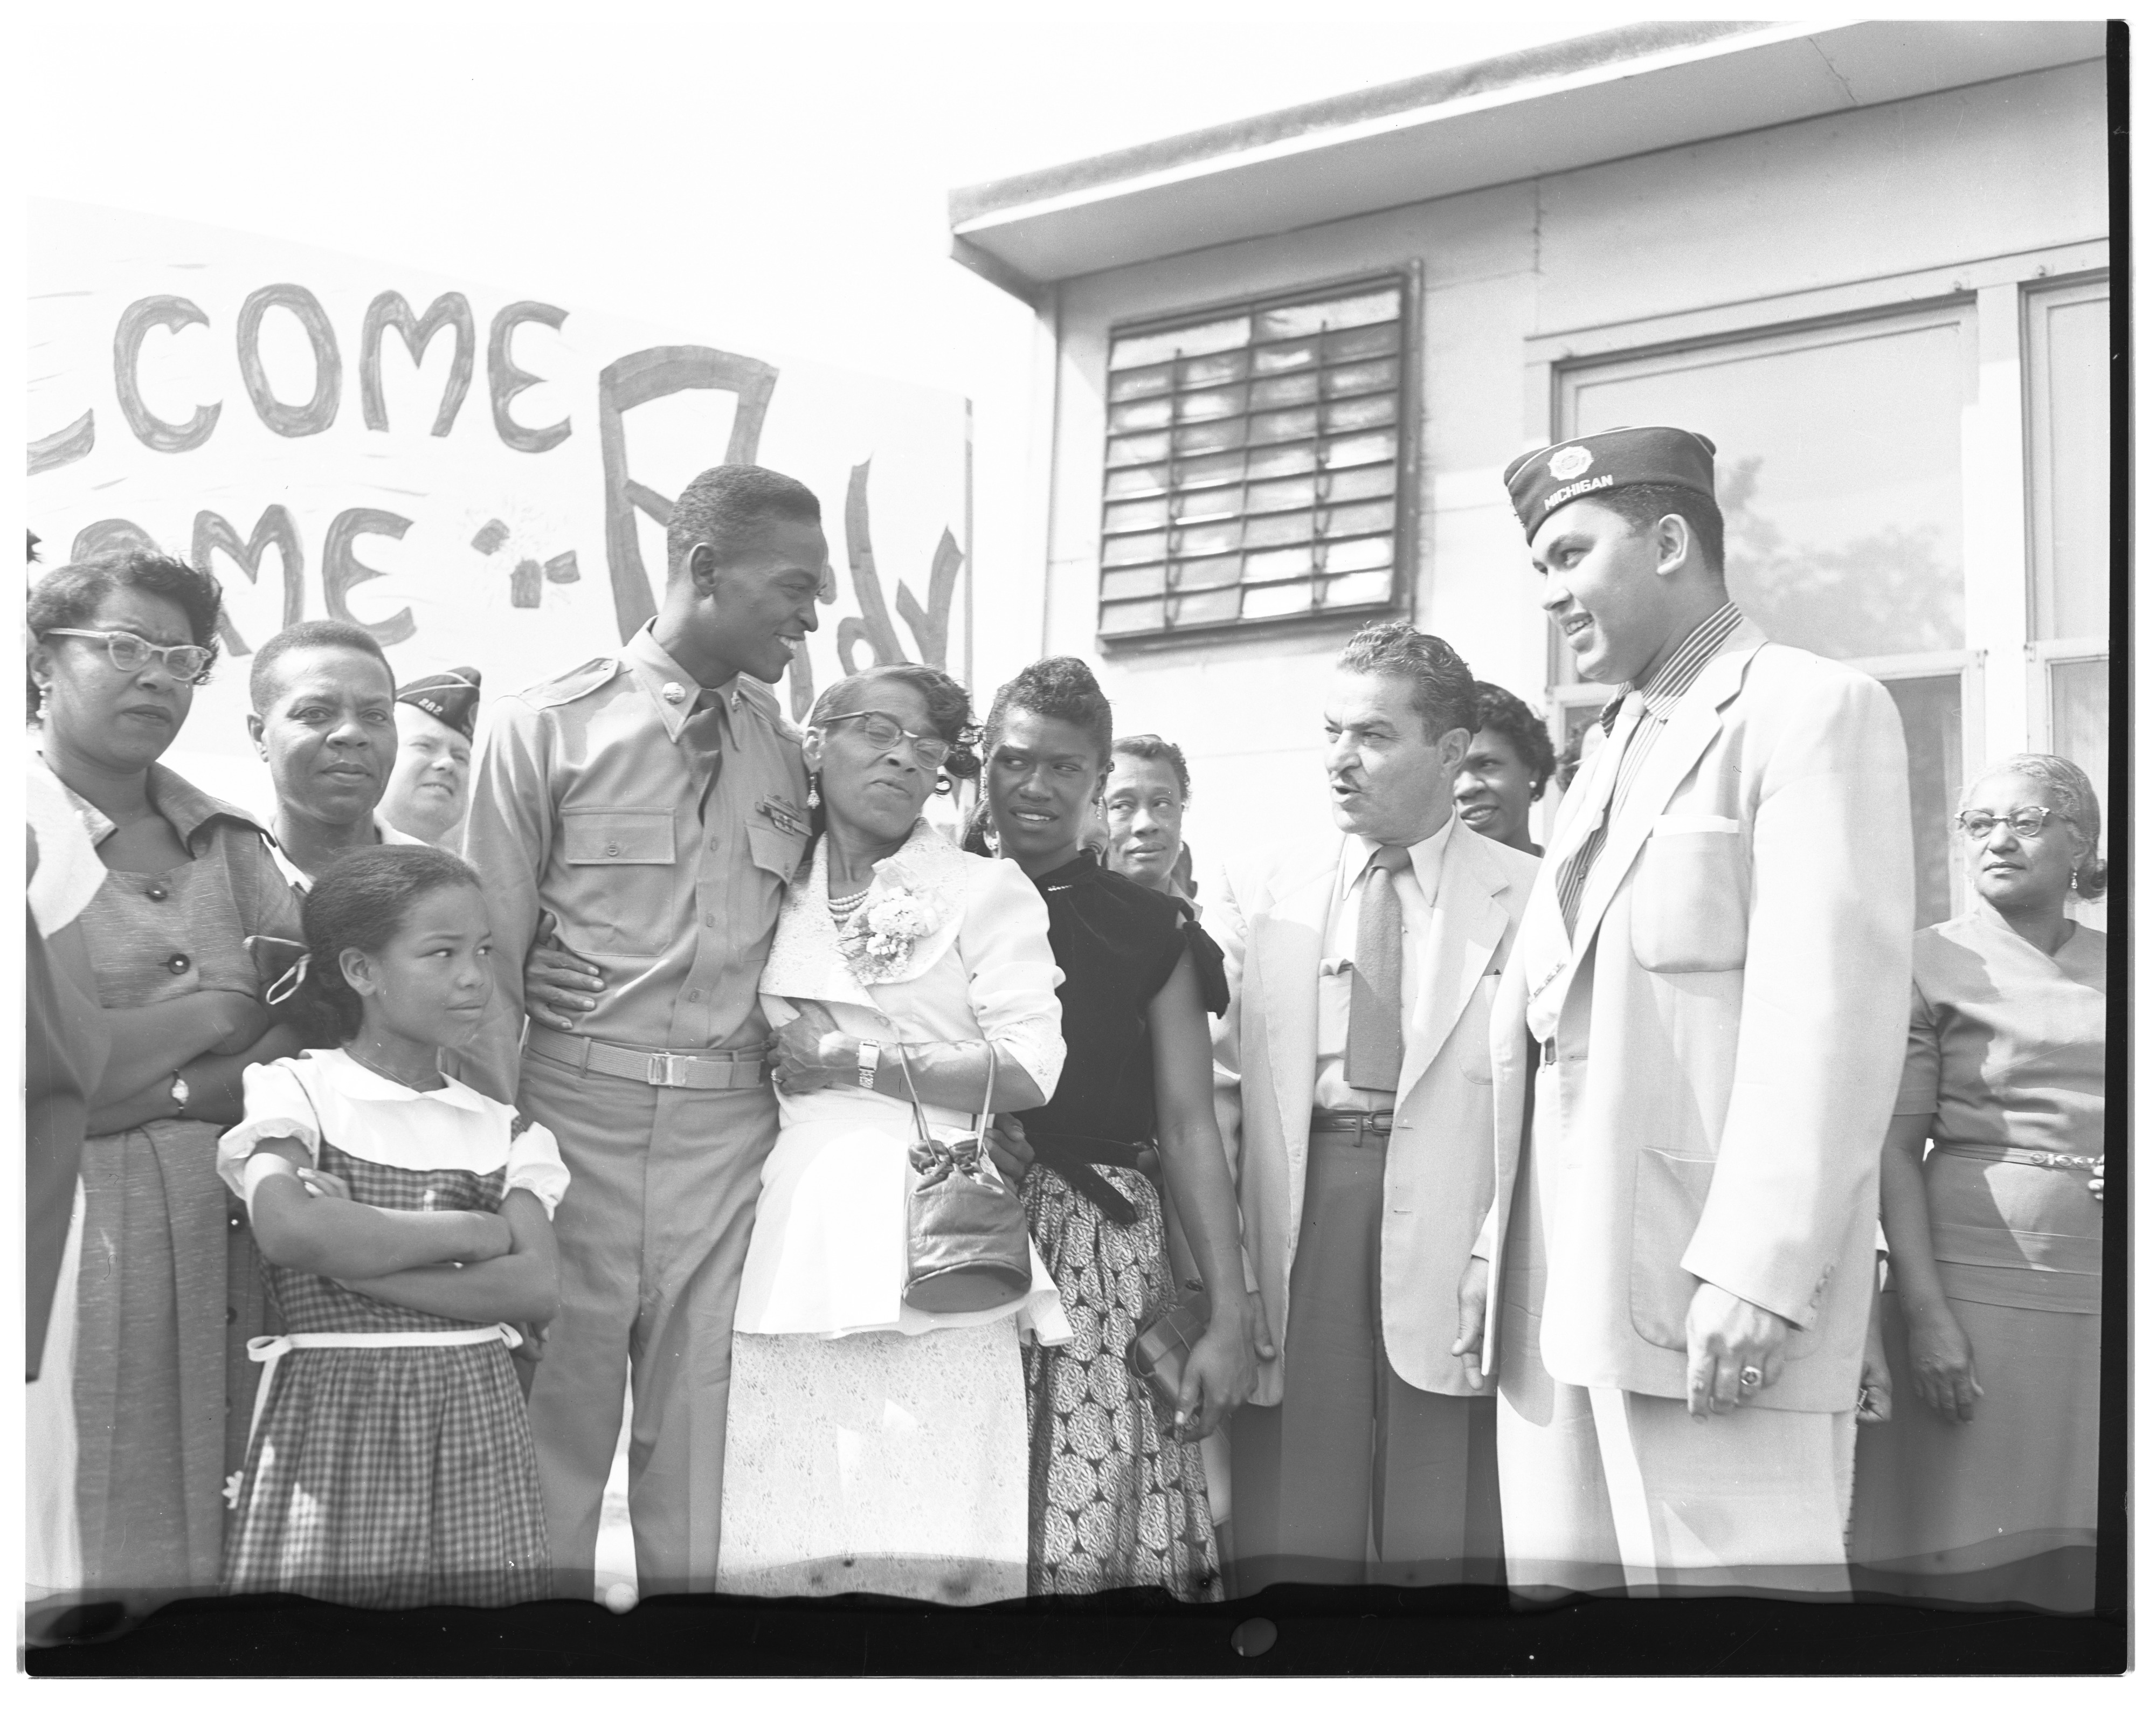 Ypsilanti Leaders Greet Korean War Vet Robert W. Fletcher, August 1953 image